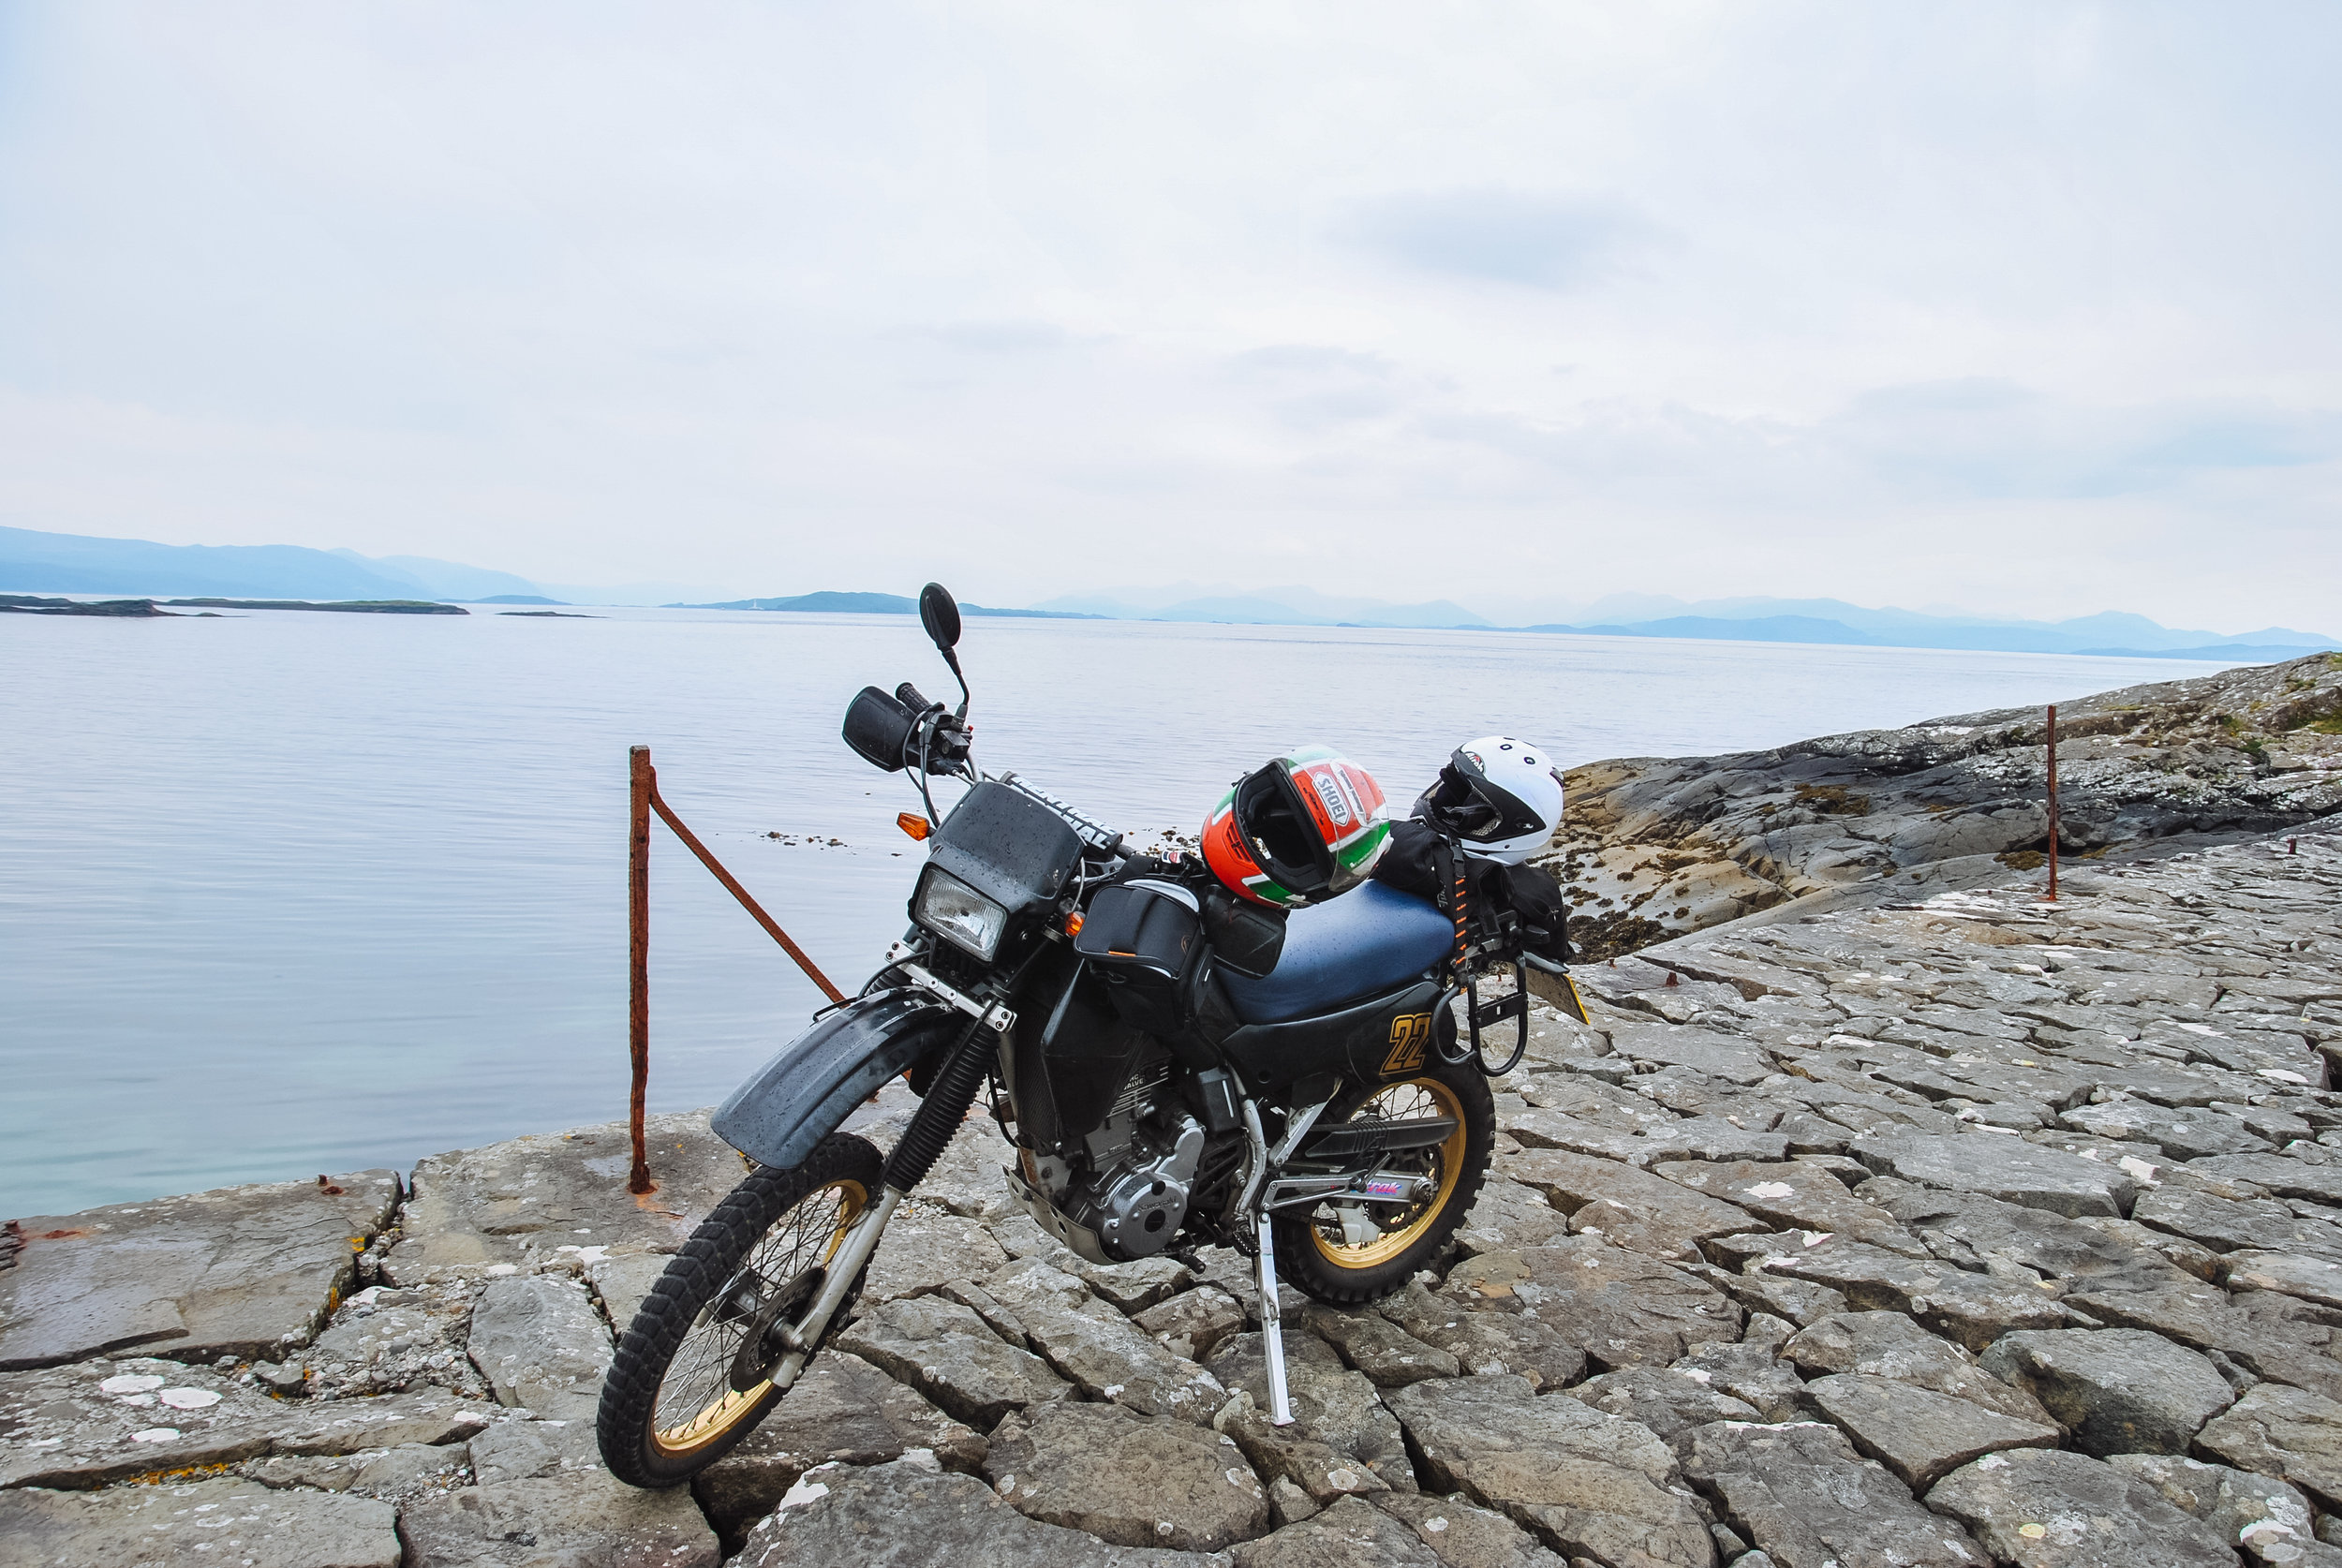 My KLR600 at Grass Point, Mull